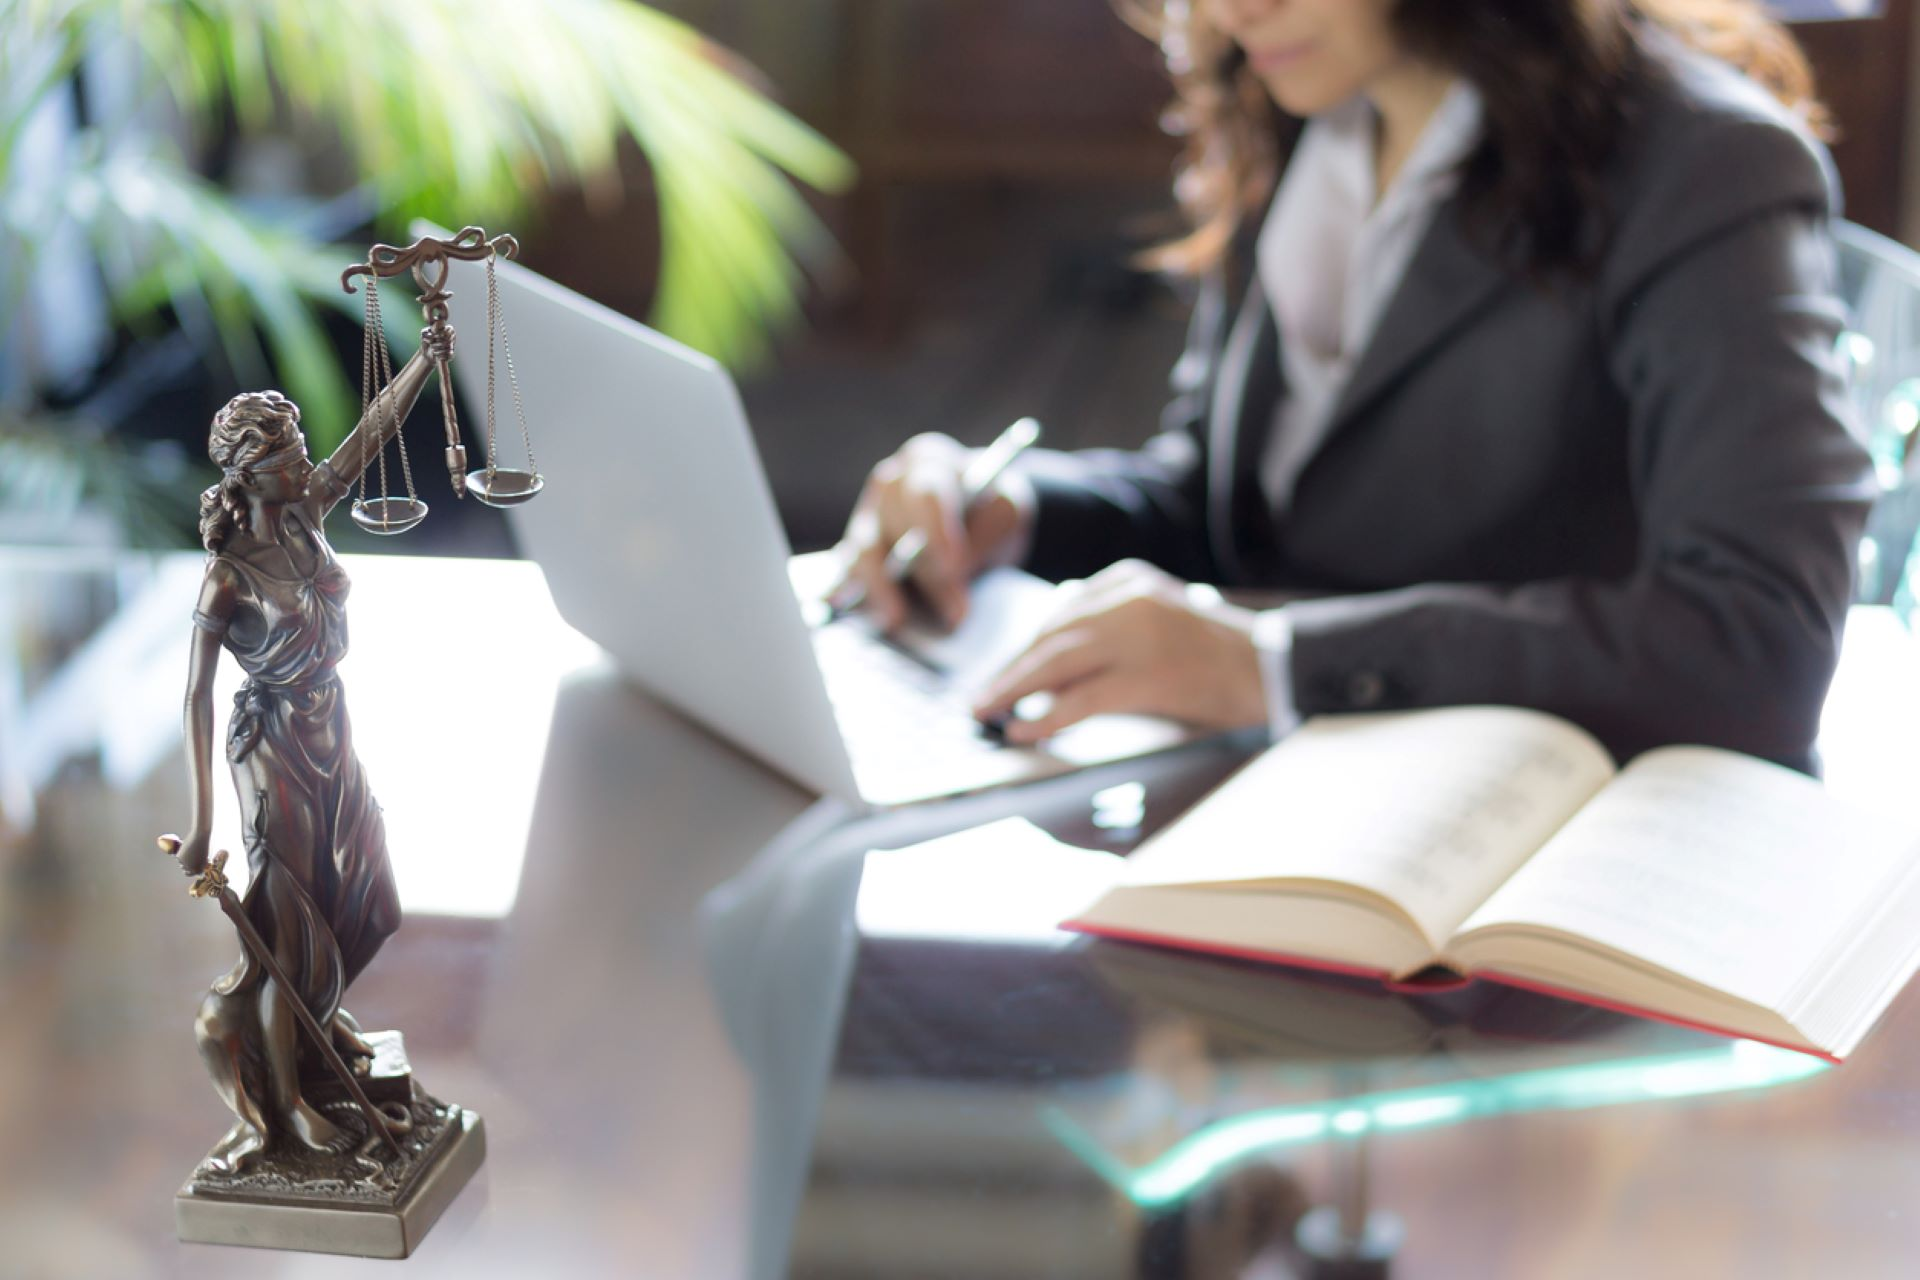 lawyer-typing-on-laptop-at-desk-with-justice-statue-holding-scales